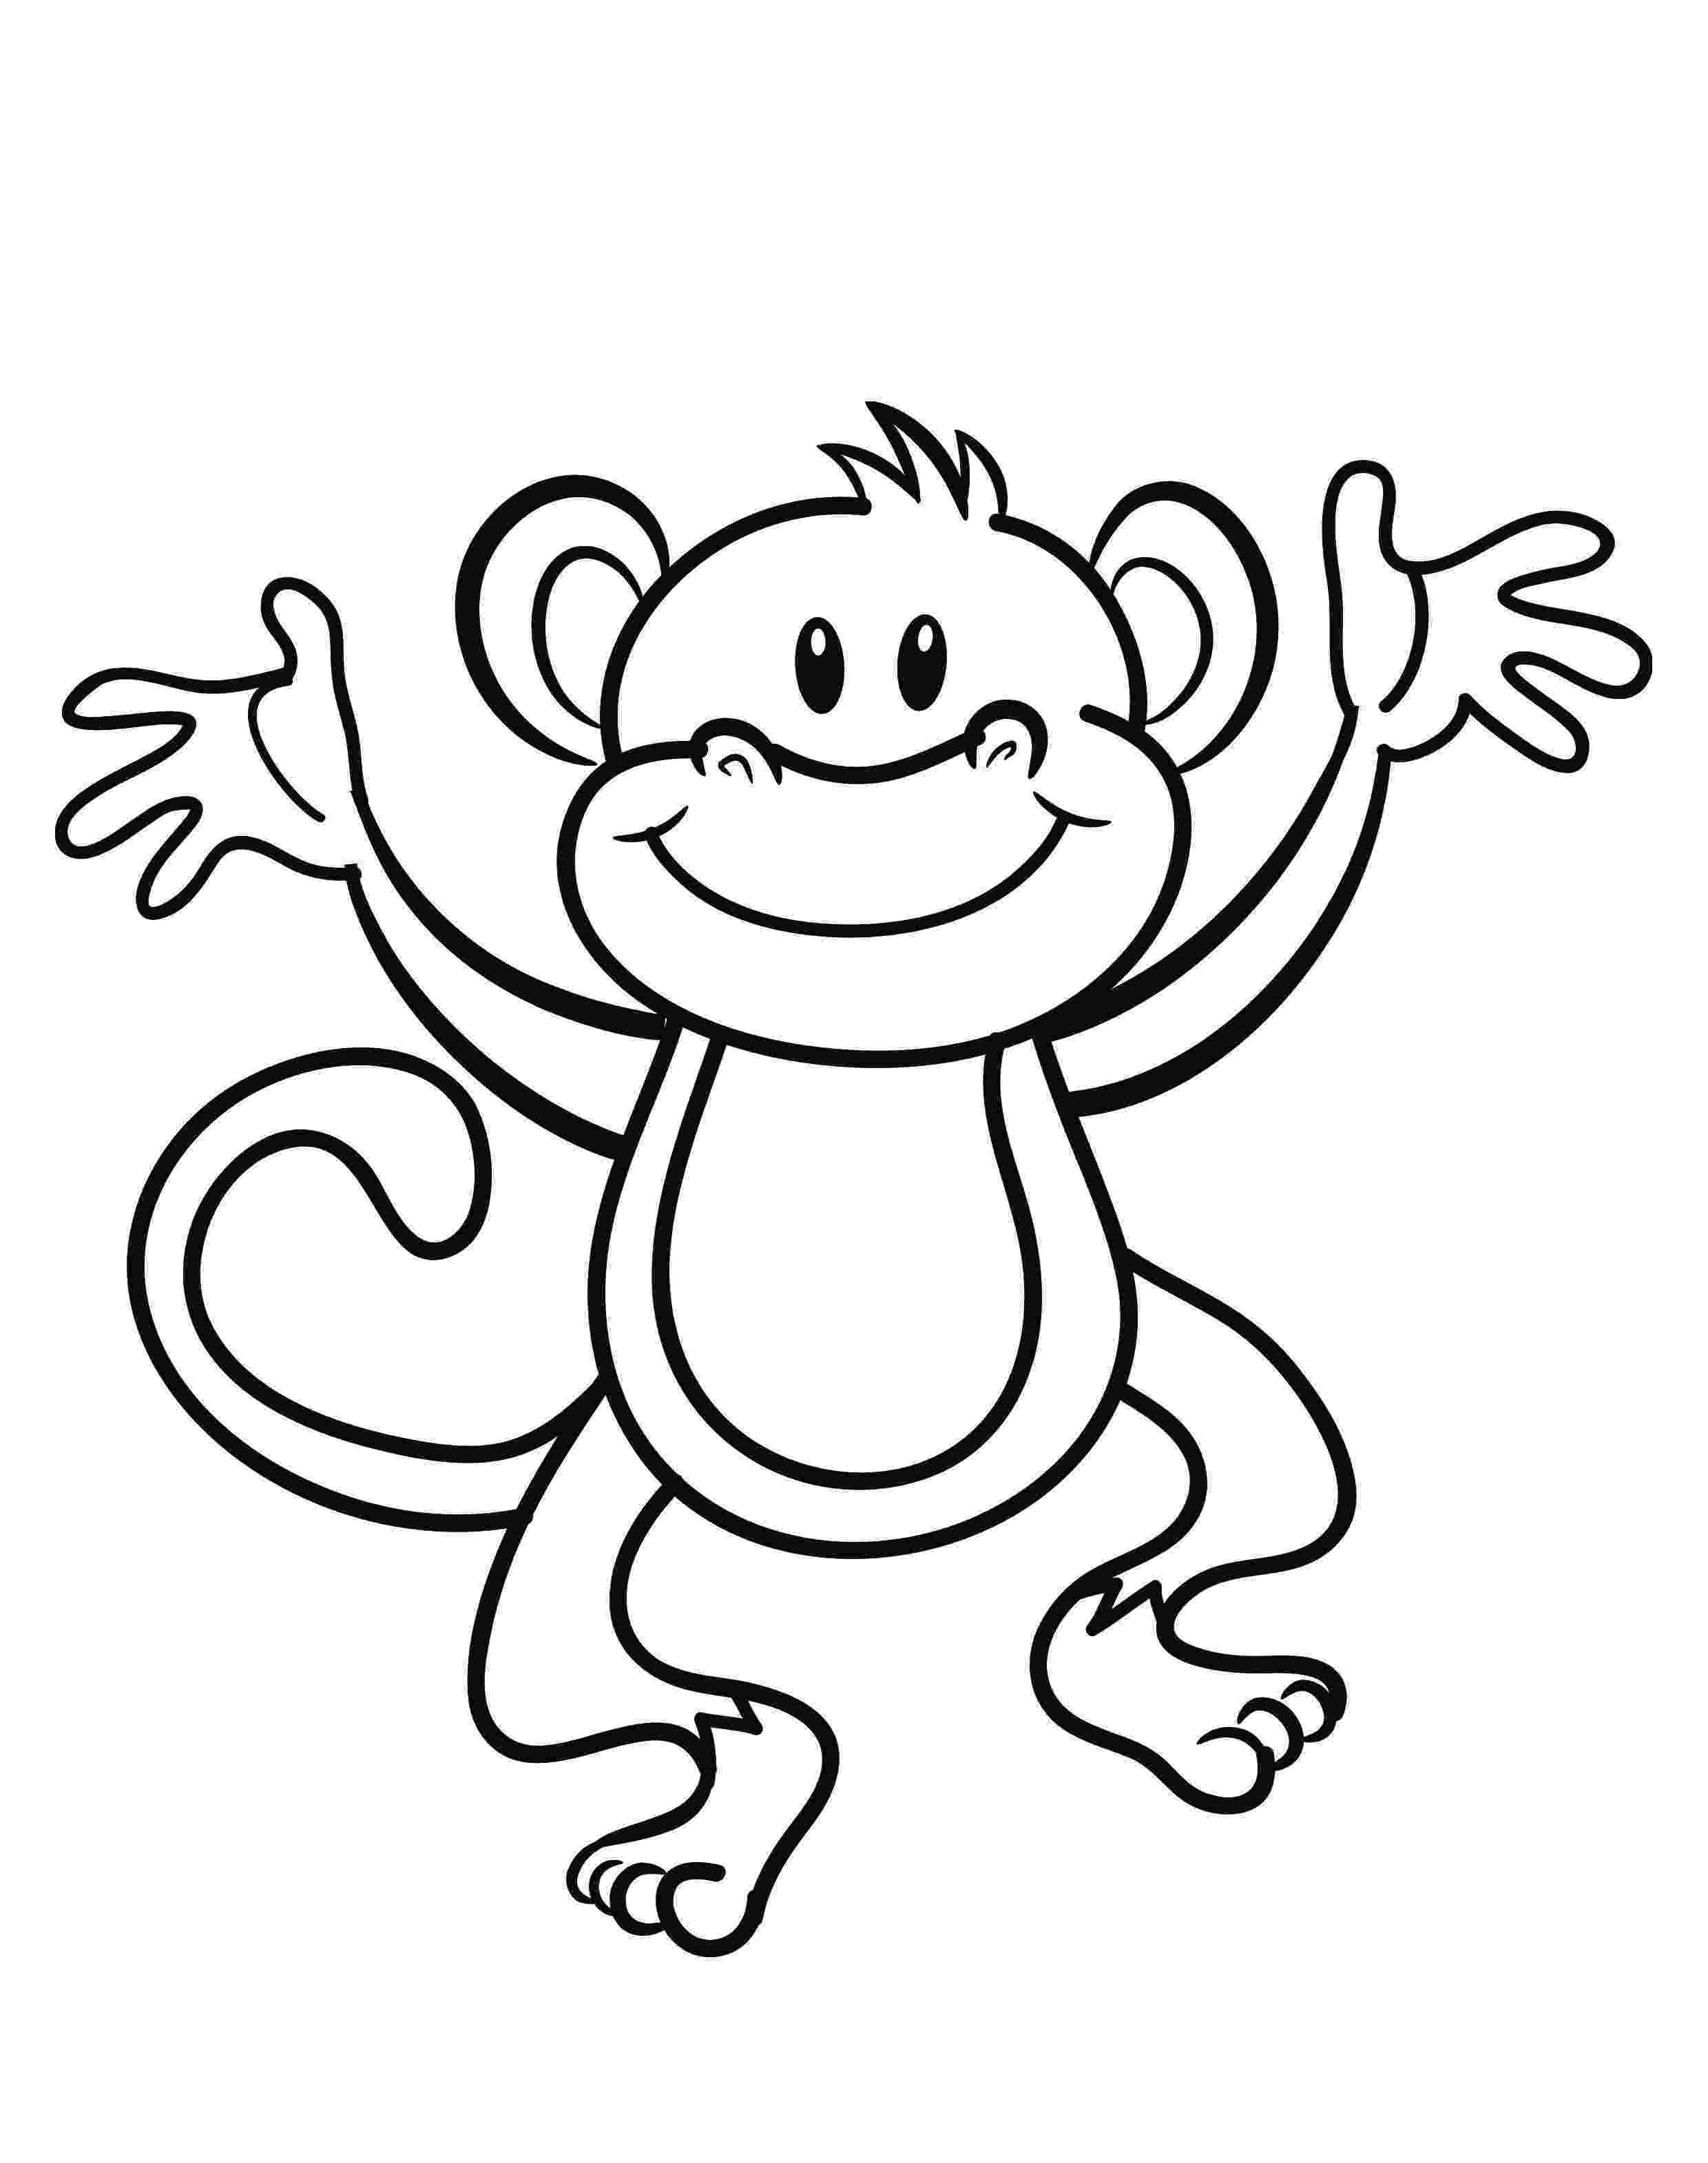 monkey colouring page smiling monkey coloring page h m coloring pages page colouring monkey